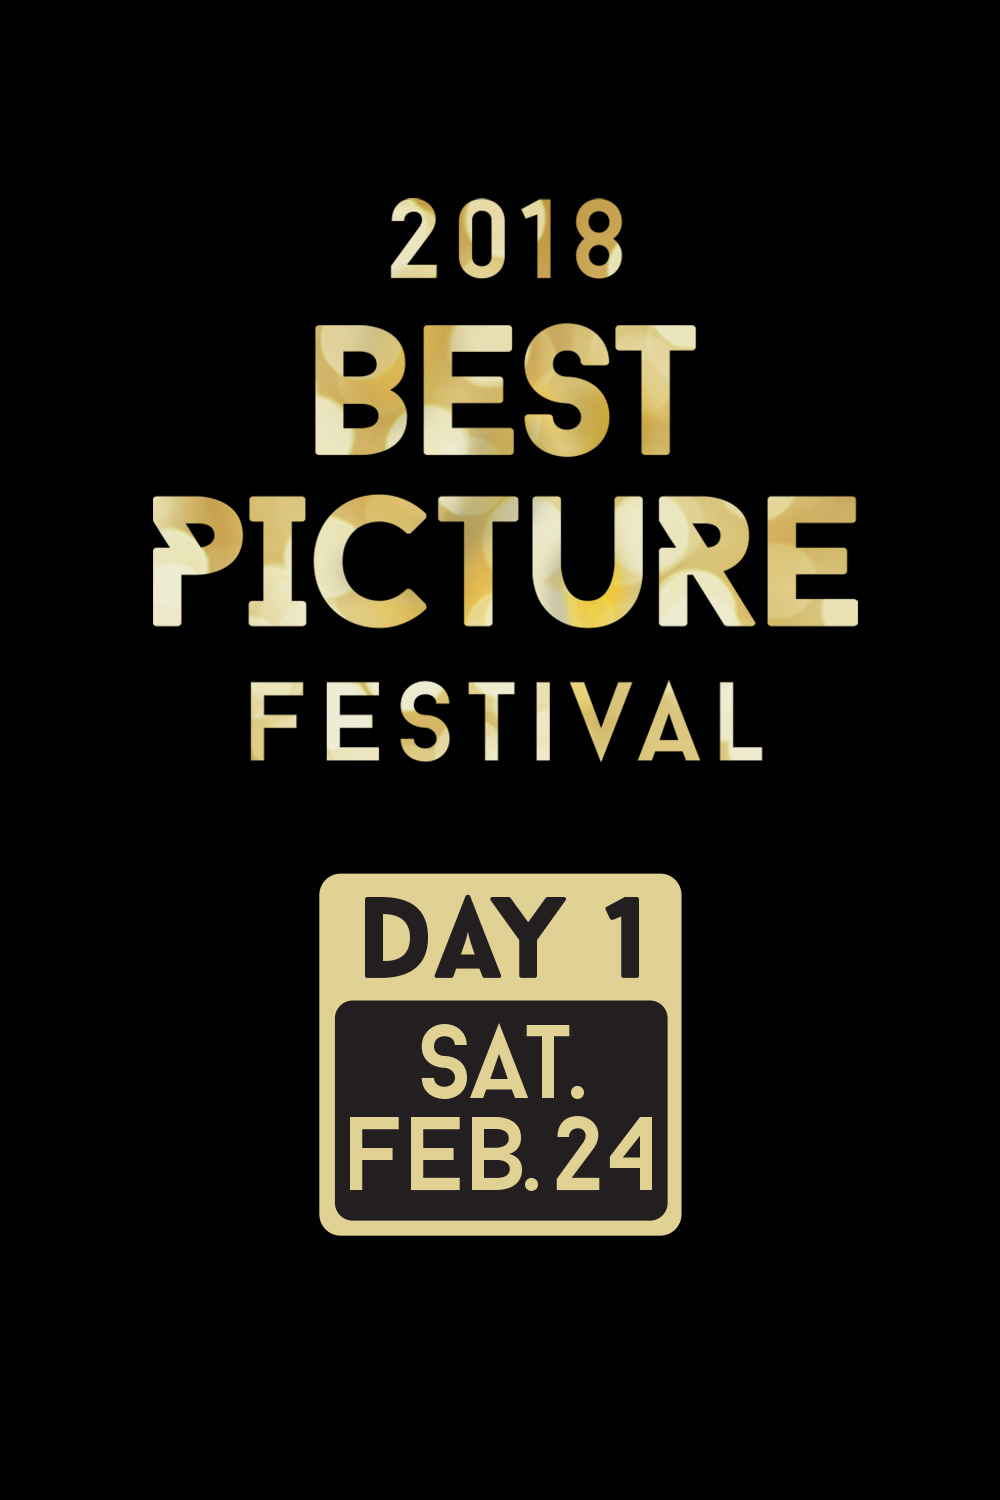 Best Picture Fest 2018: Day 1